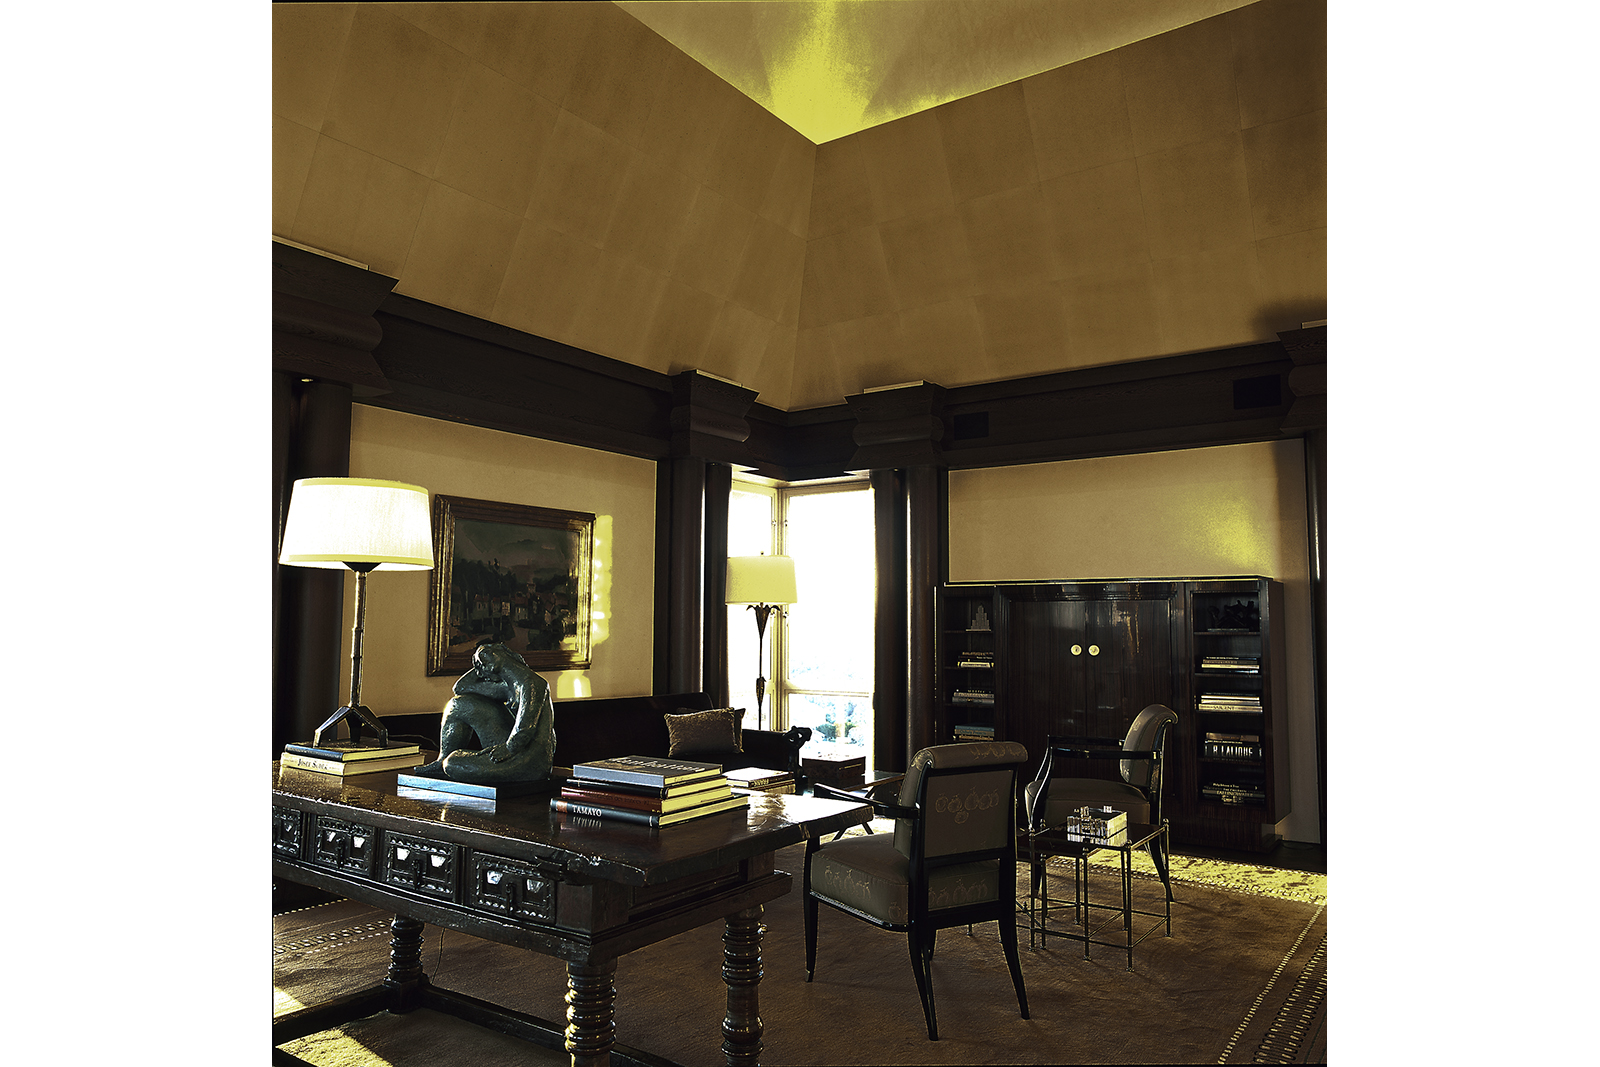 Living Room with Parchment Tapered Ceiling